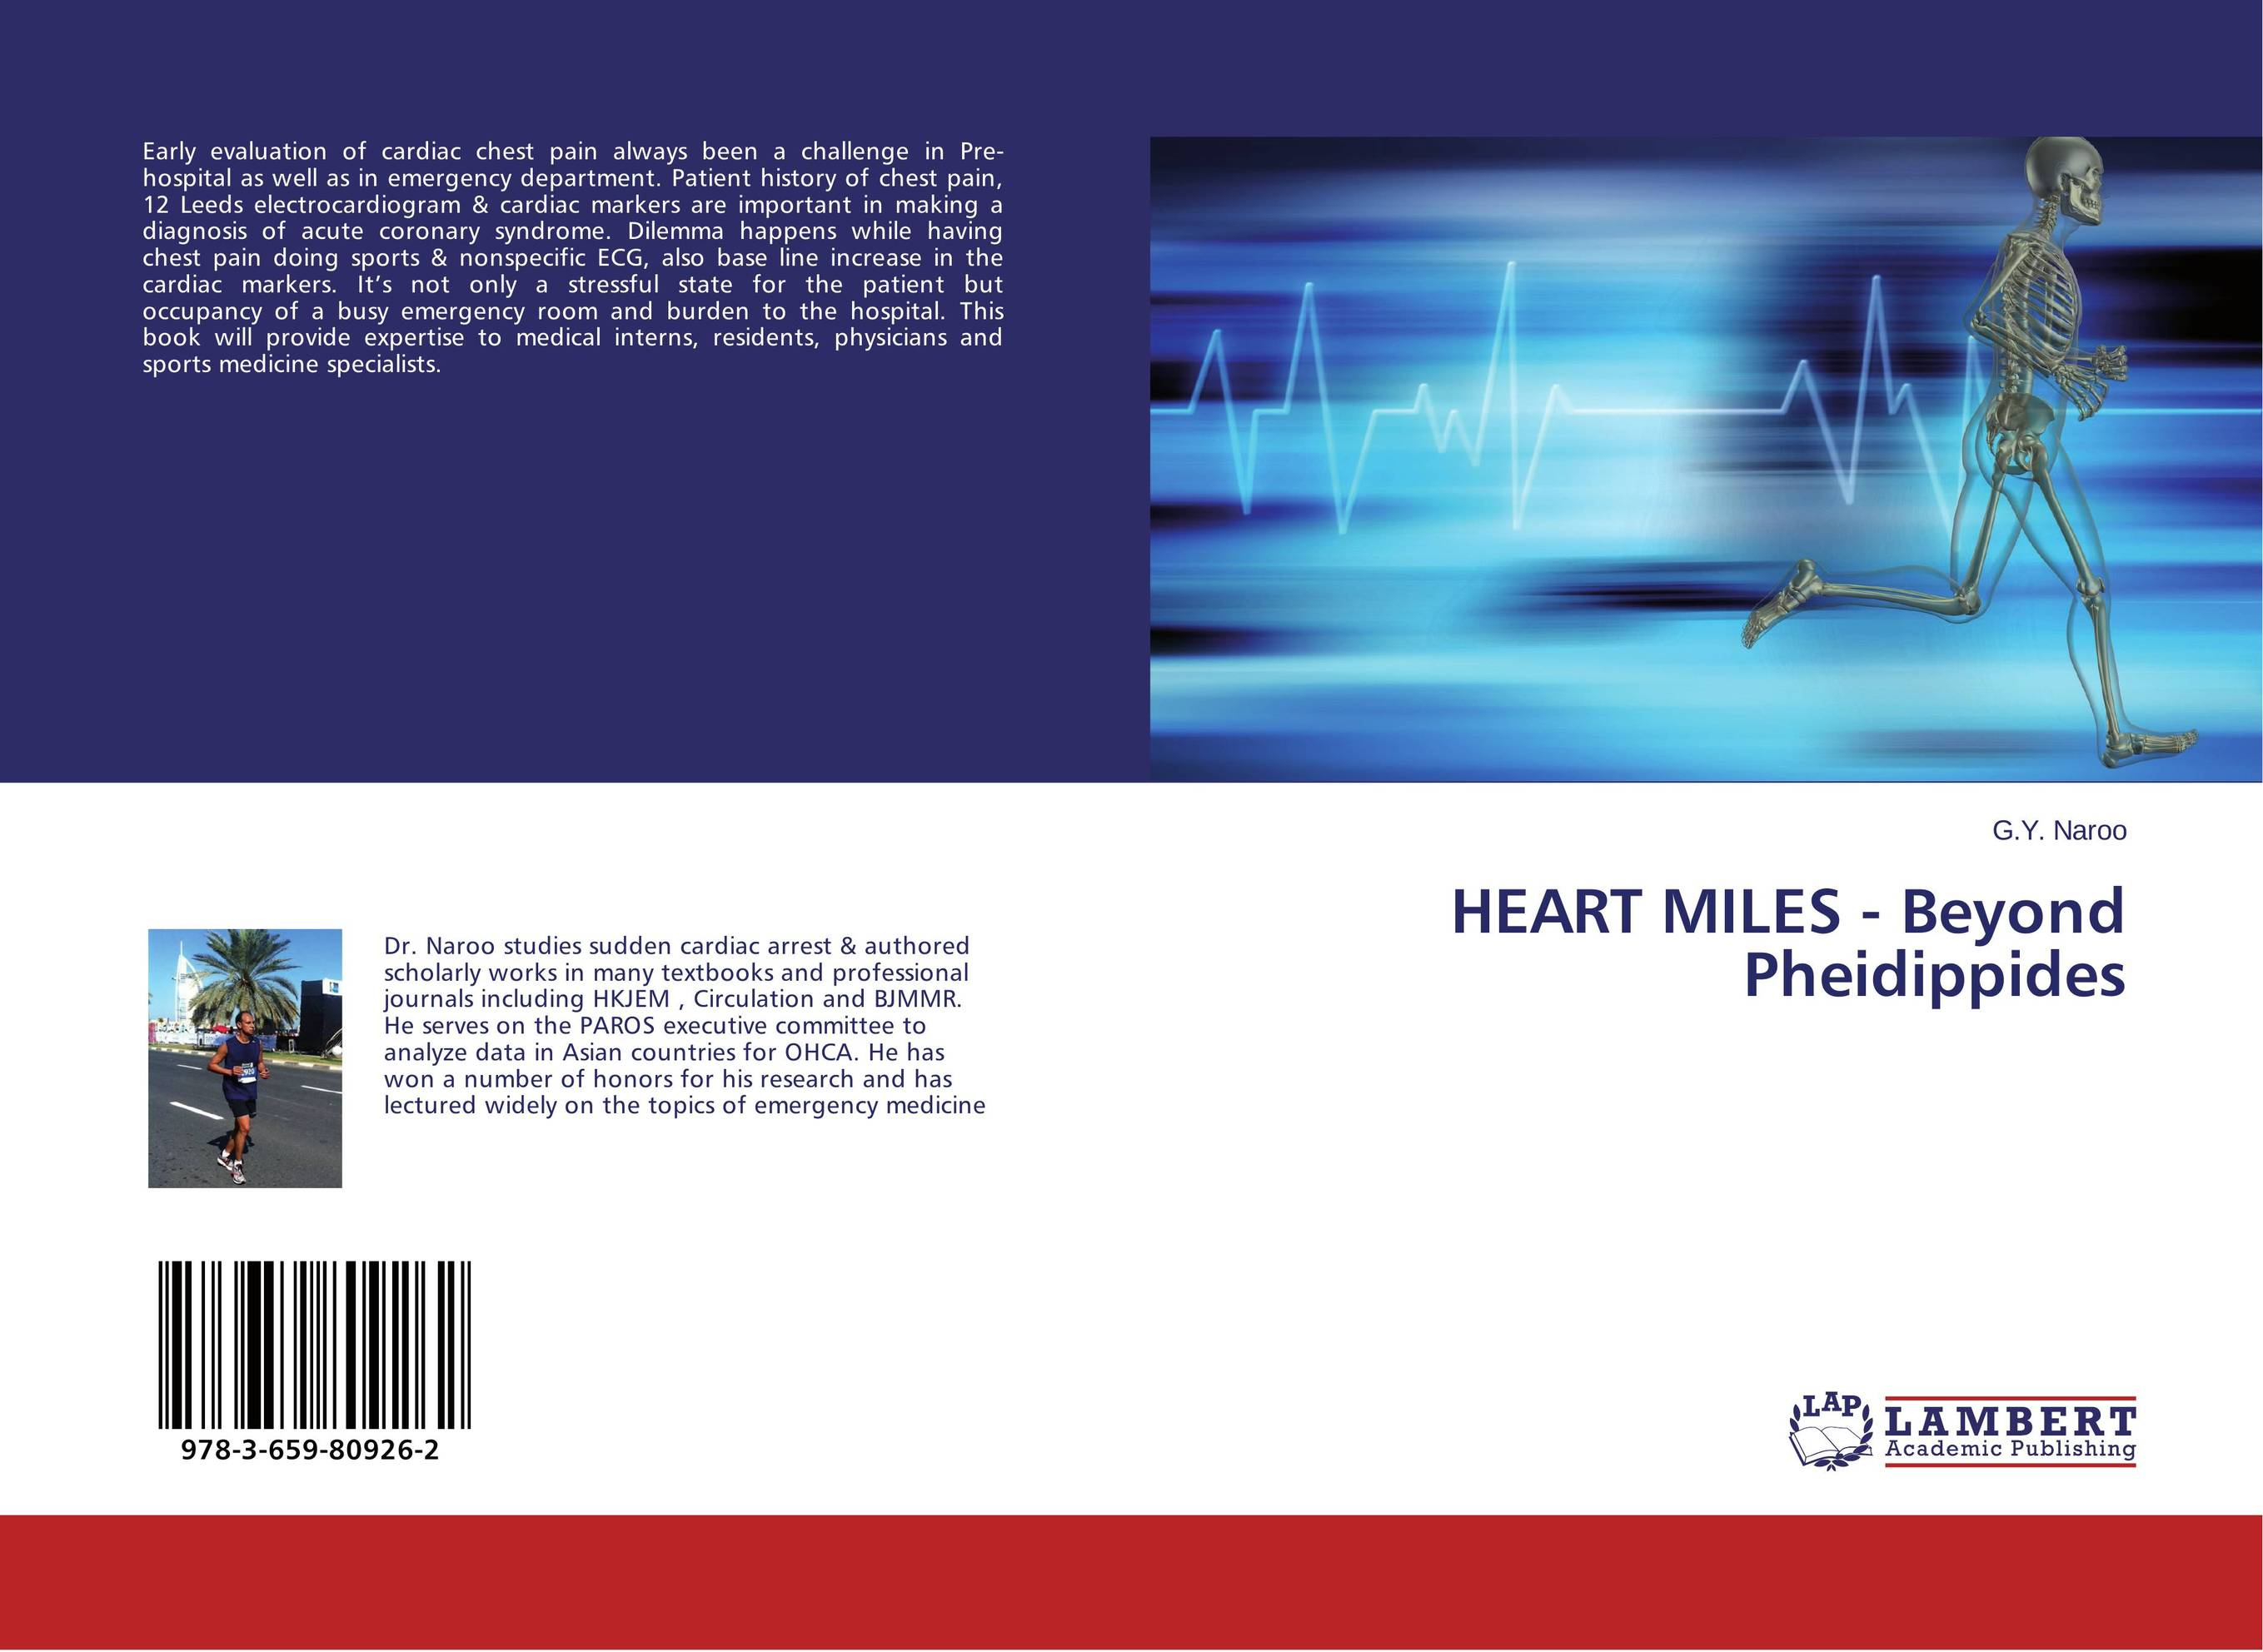 HEART MILES - Beyond Pheidippides case history of therapeutic patient manual